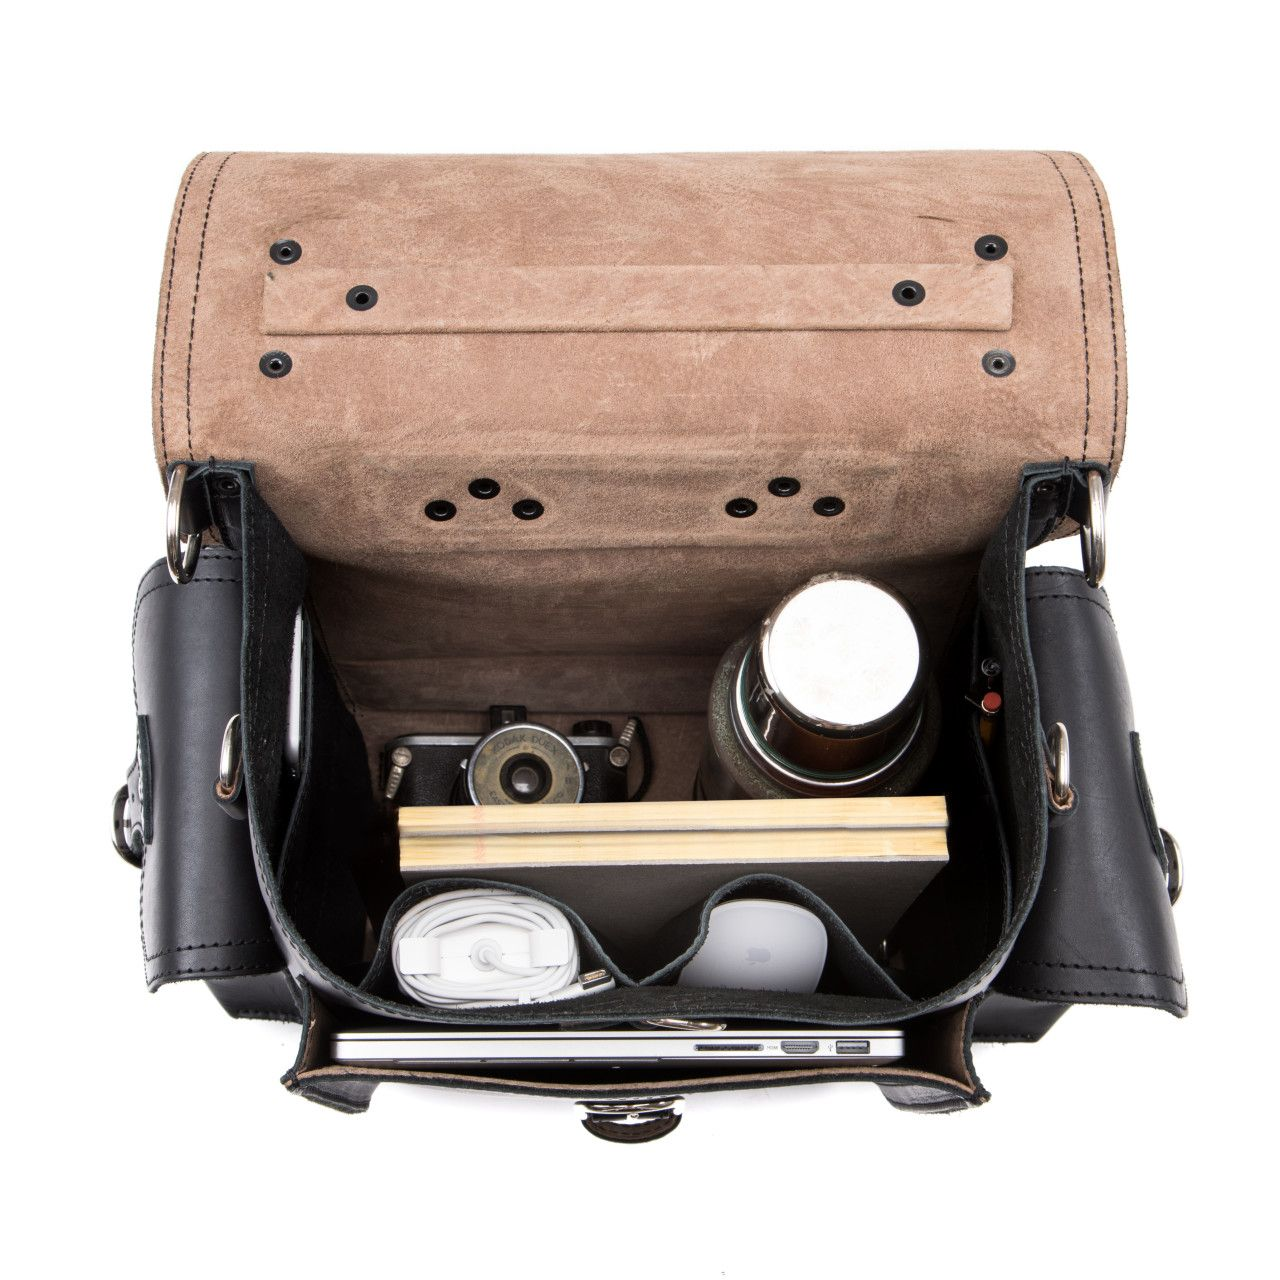 An old camera and a macbook with a set to handle the inside of the squared leather backpack in black leather